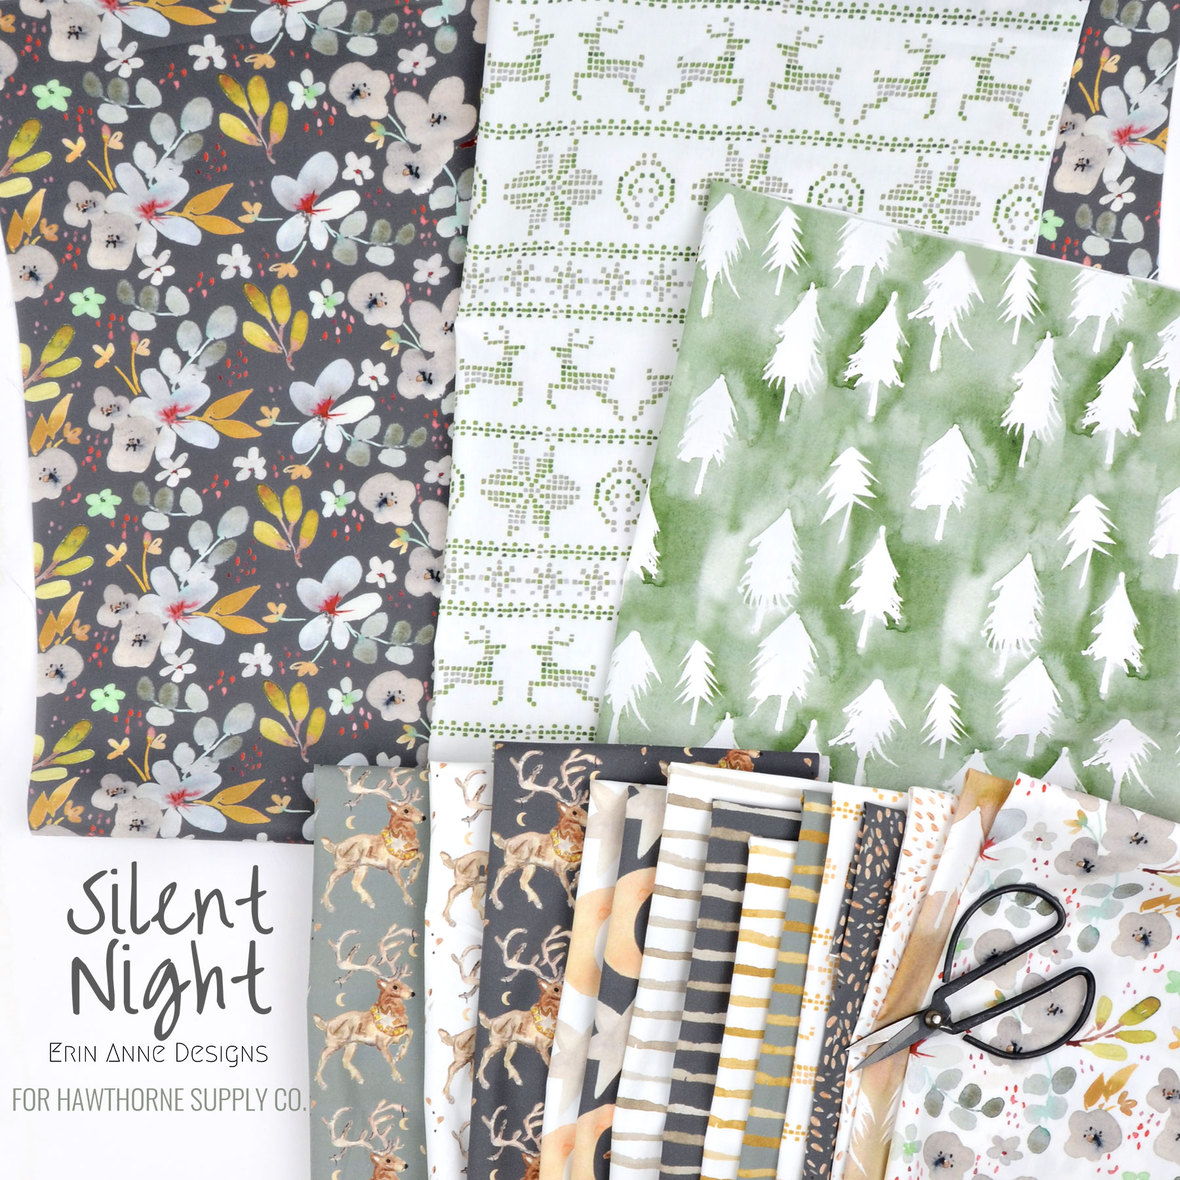 Silent-Night-Fabric-Erin-Anne-for-Hawthorne-Supply-Co